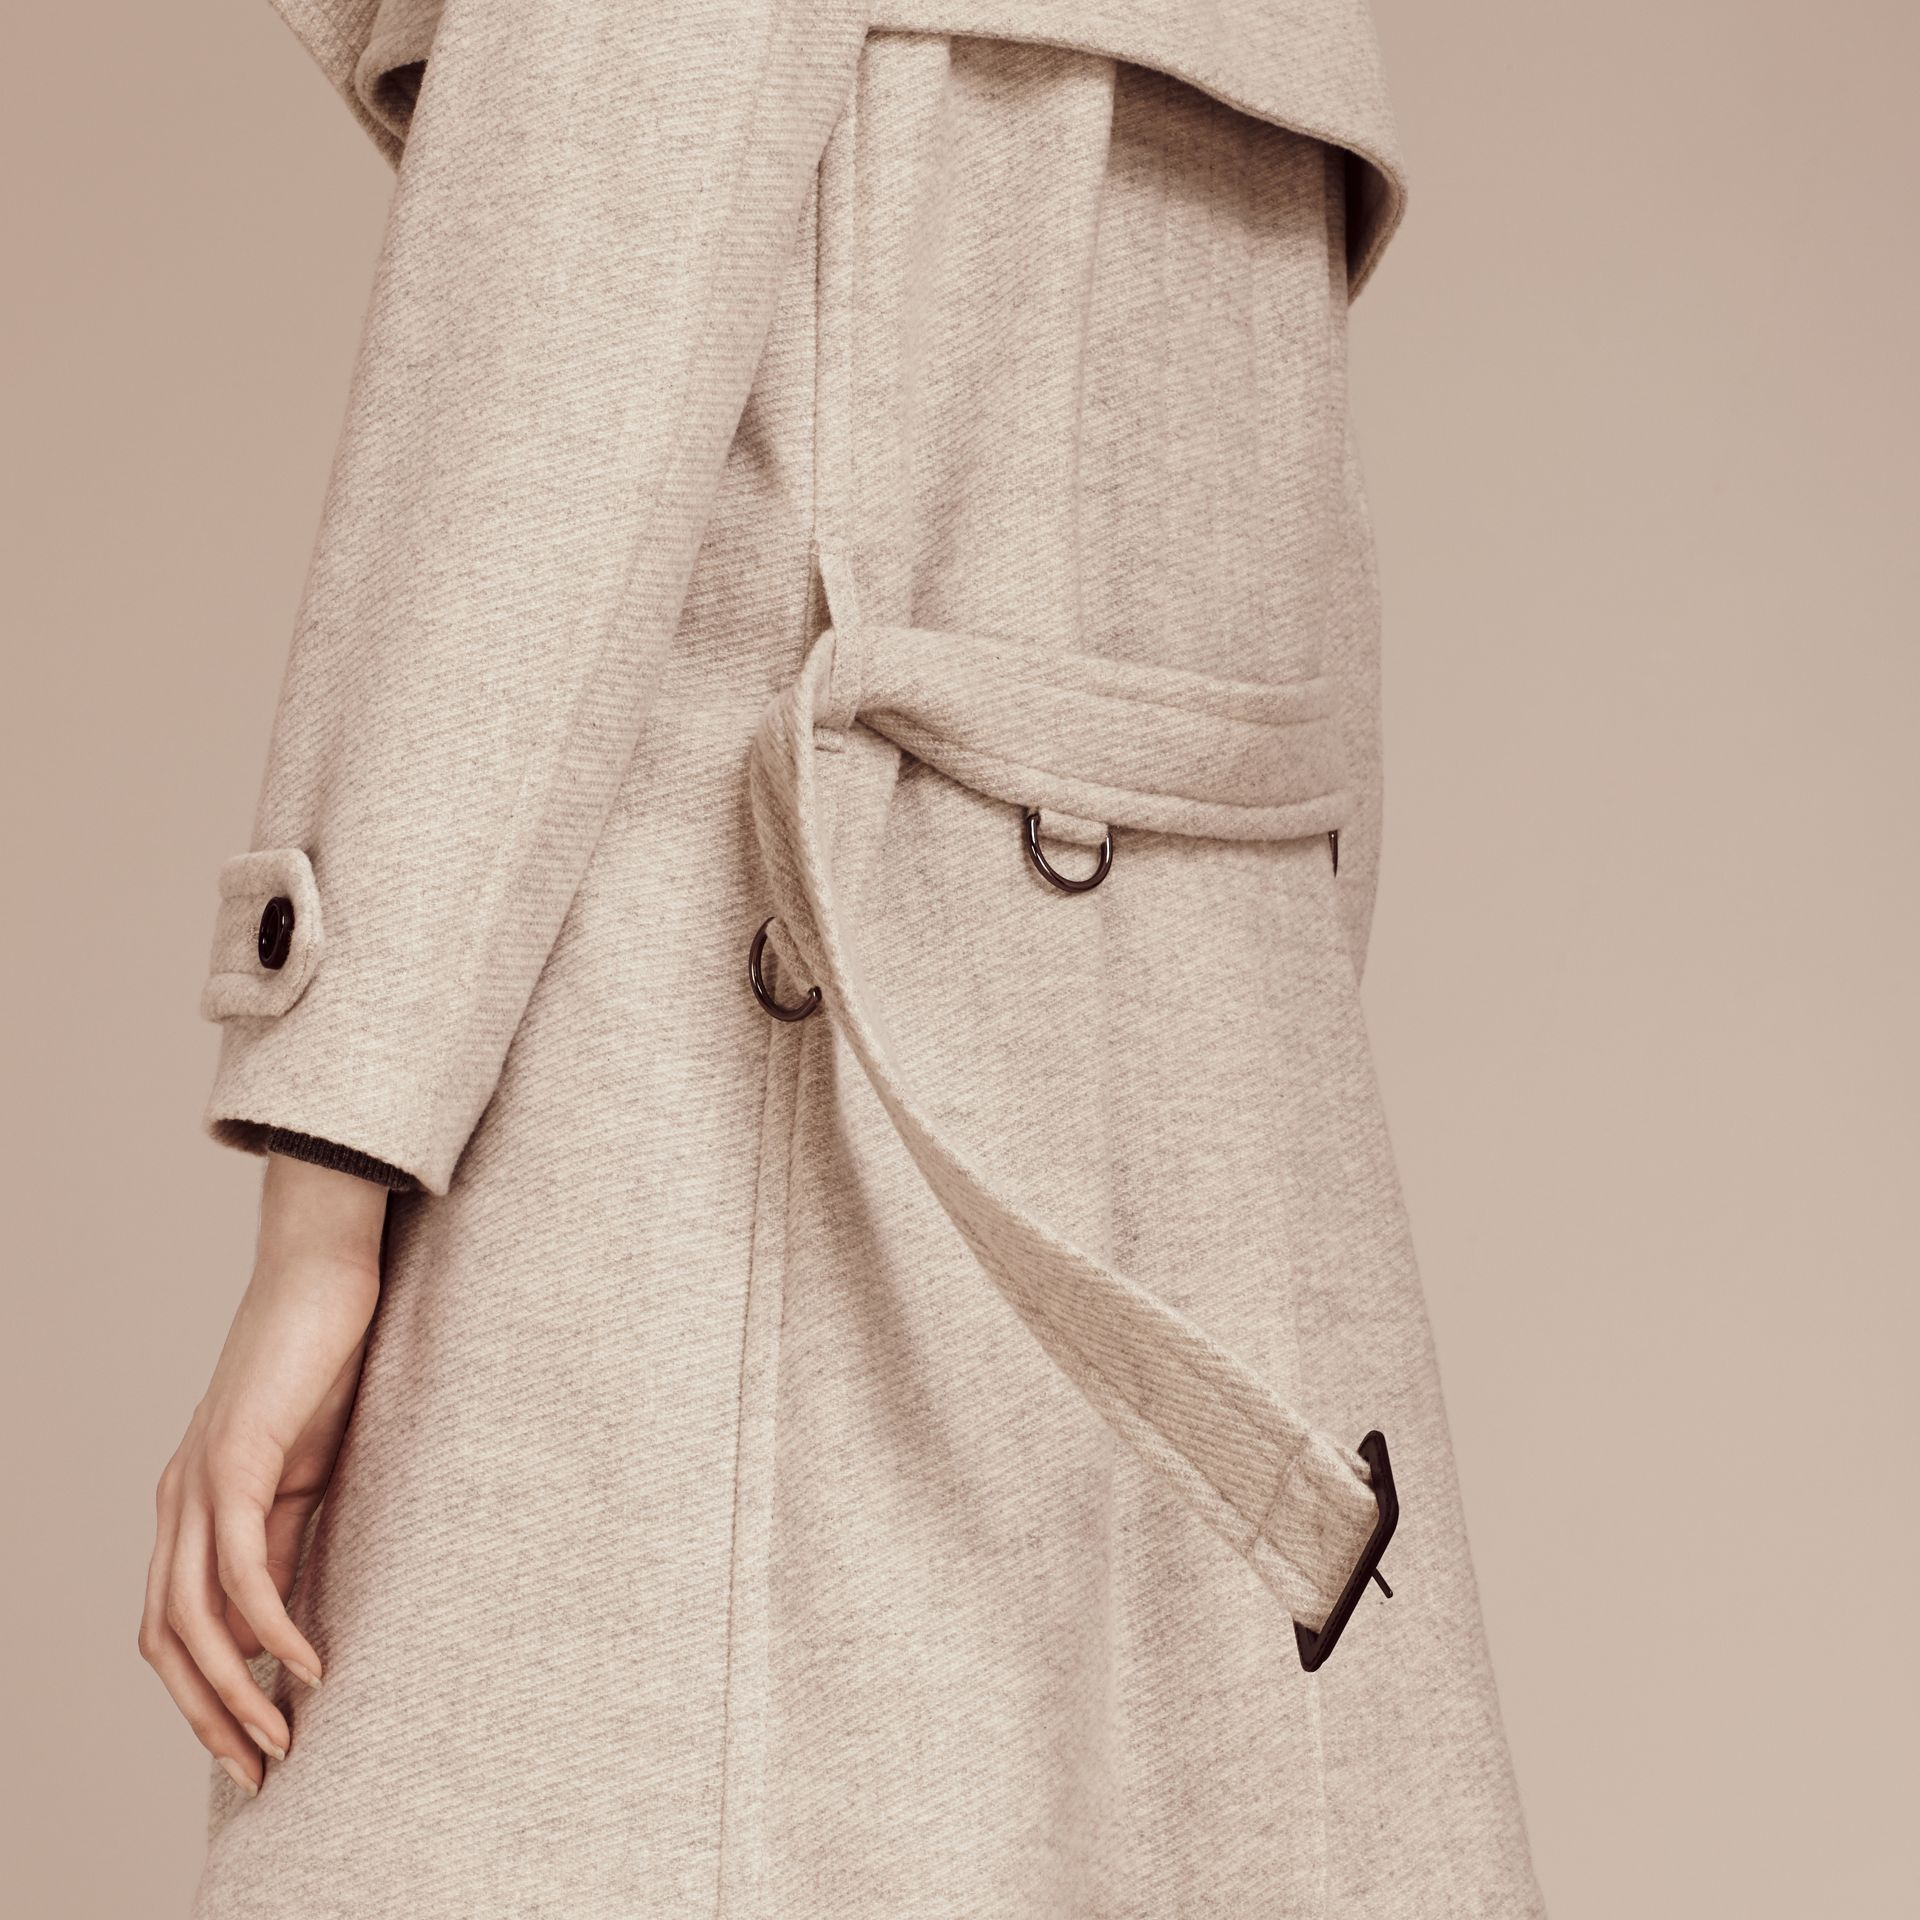 Blanc/gris Trench-coat portefeuille en cachemire - photo de la galerie 6